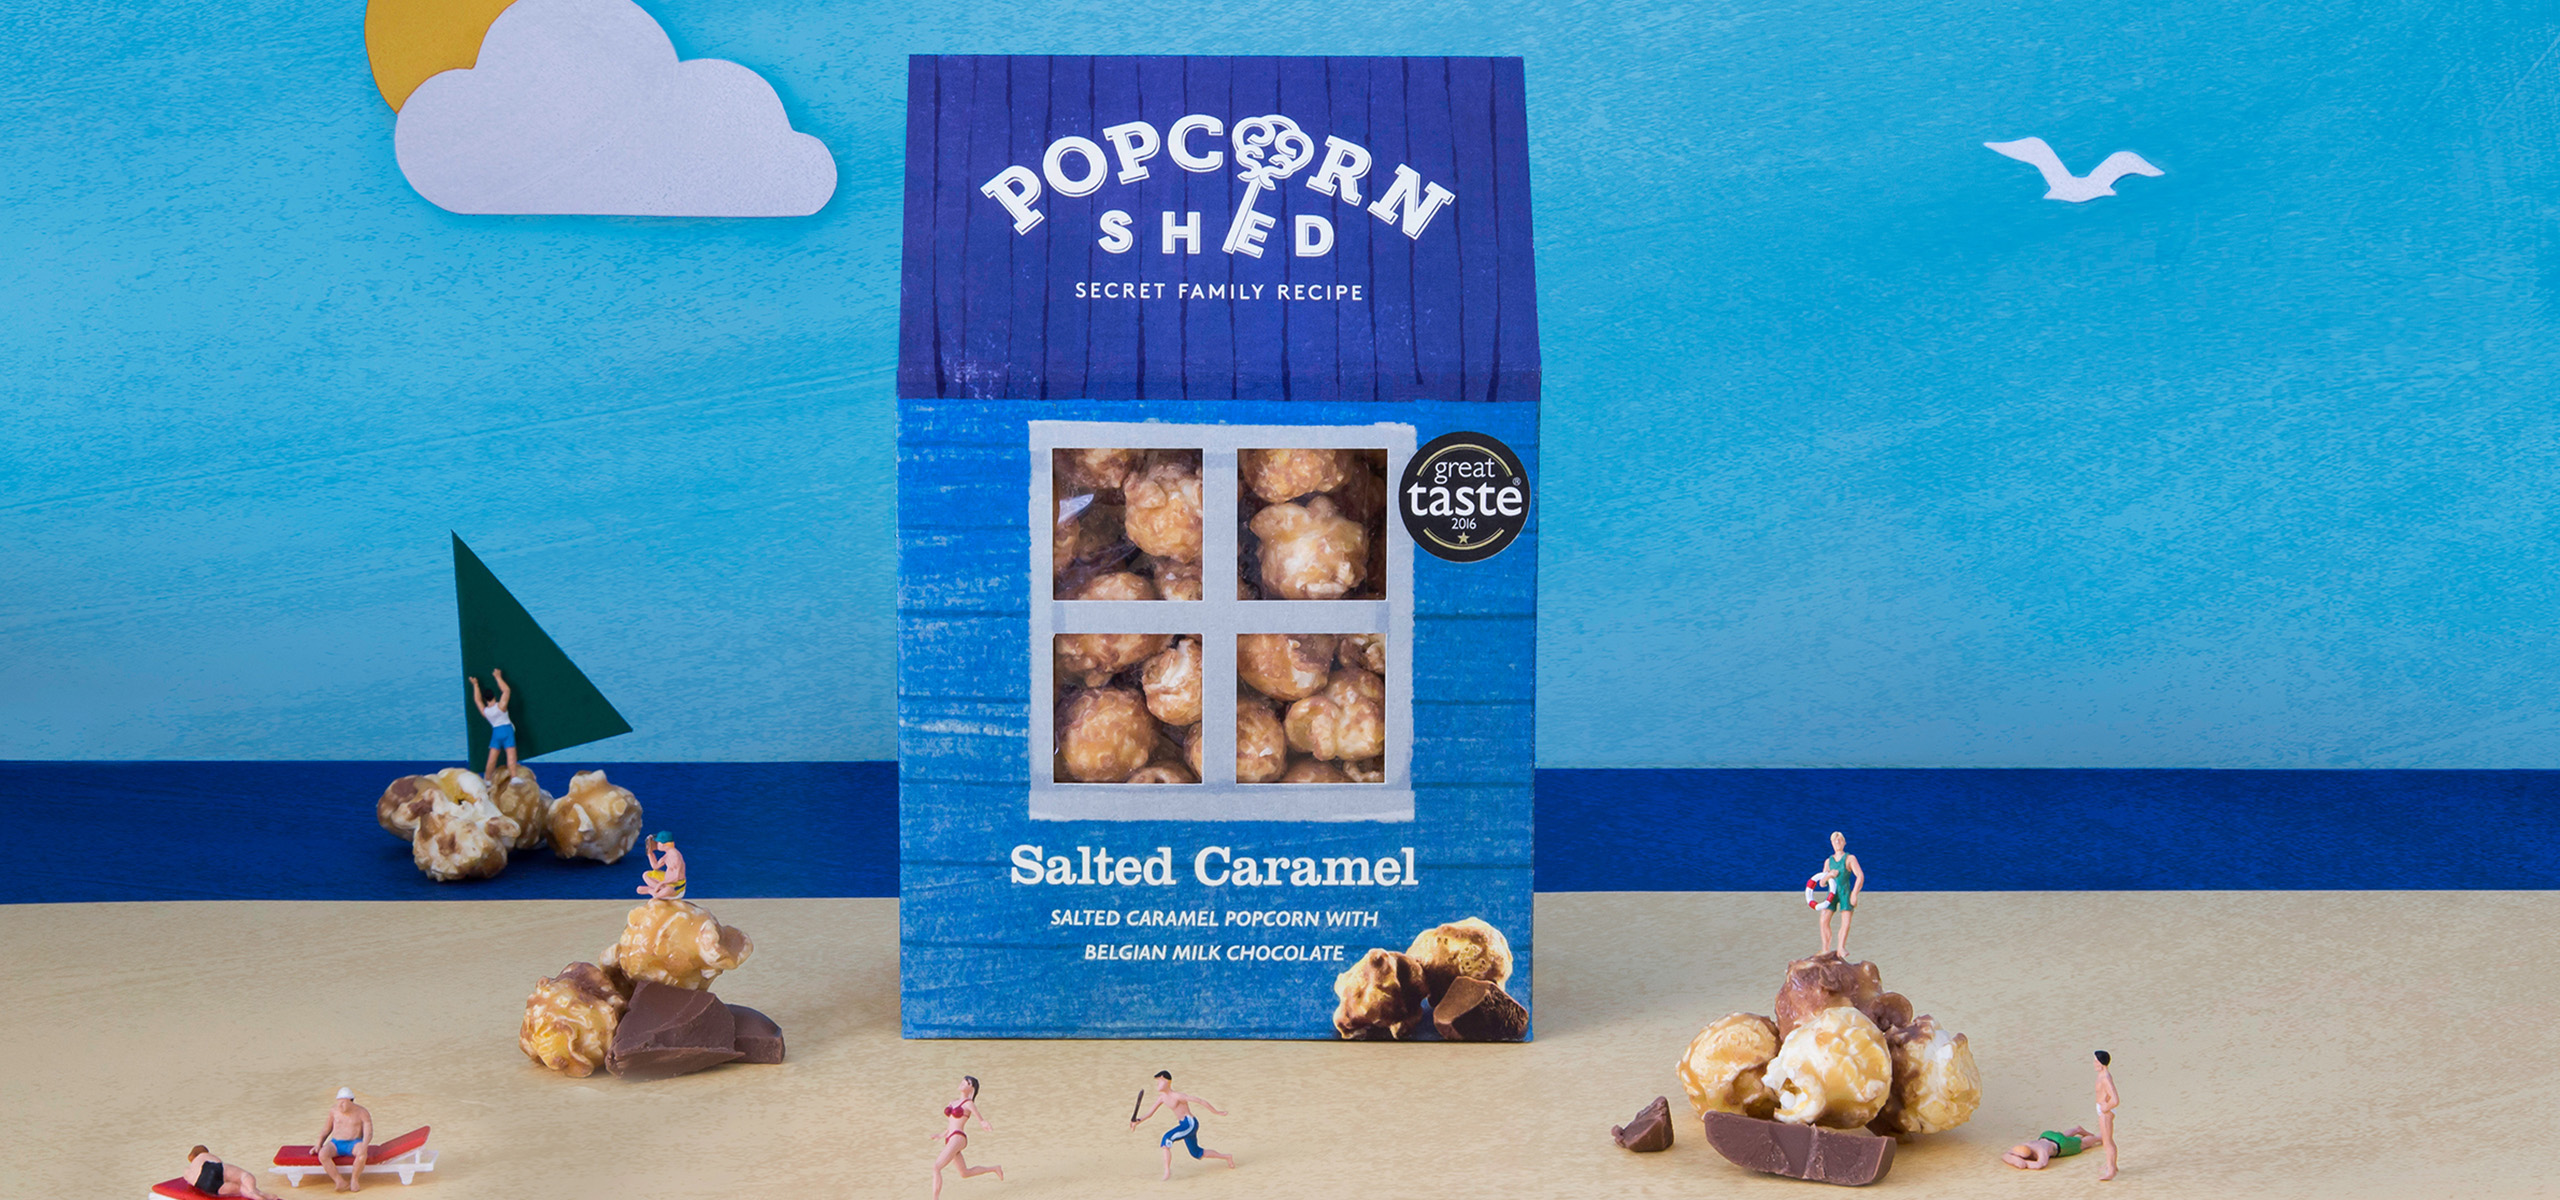 Salted Caramel Box design for food startup brand Popcorn Shed, designed by White Bear Studio